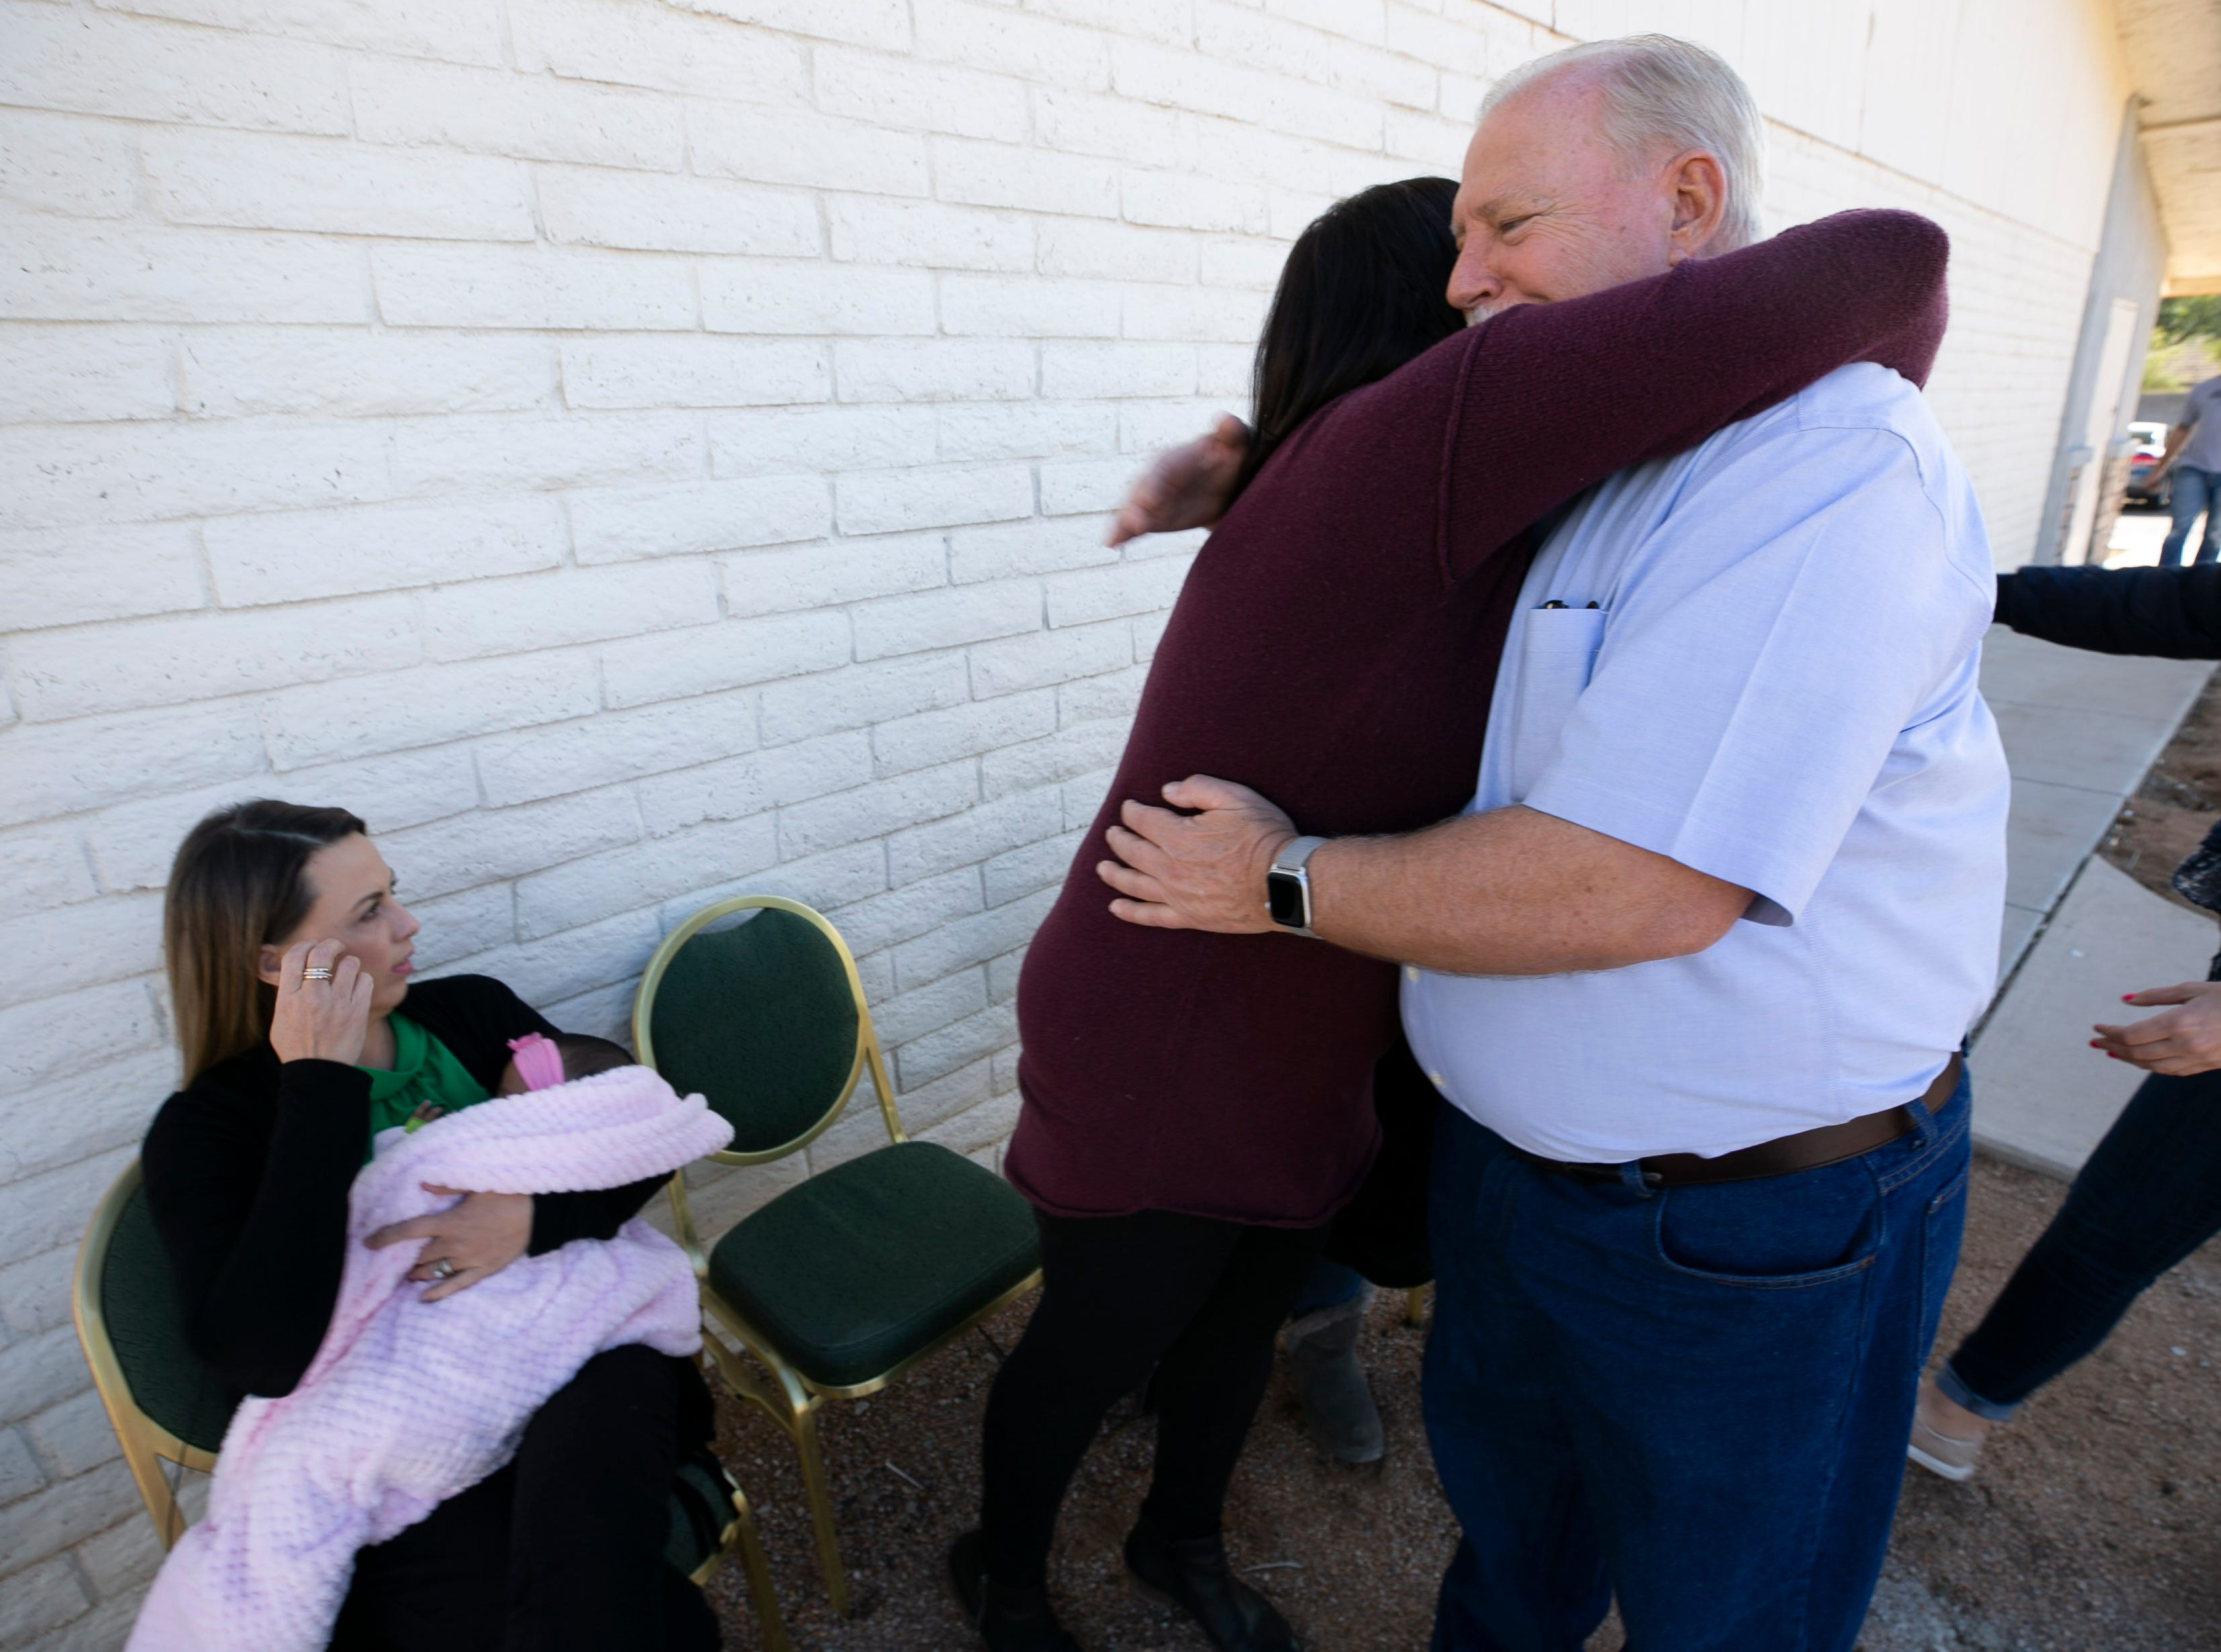 Randy Hansen of Mesa hugs Susan Woodruff, vice president and co-founder of ASA Now, as Anika Robinson, president and co-founder of ASA Now, looks on at the yet-to-be-opened Jacob's Mission Community Center in Mesa on Jan. 14, 2019. Randy and his wife, Leslie Hansen, made a million-dollar donation to ASA Now, which is creating the community center that will provide support to foster-care families. Hansen made the donation paying off ASA Now's mortgage on the building for the community center after reading a story about ASA Now in The Arizona Republic/azcentral.com.